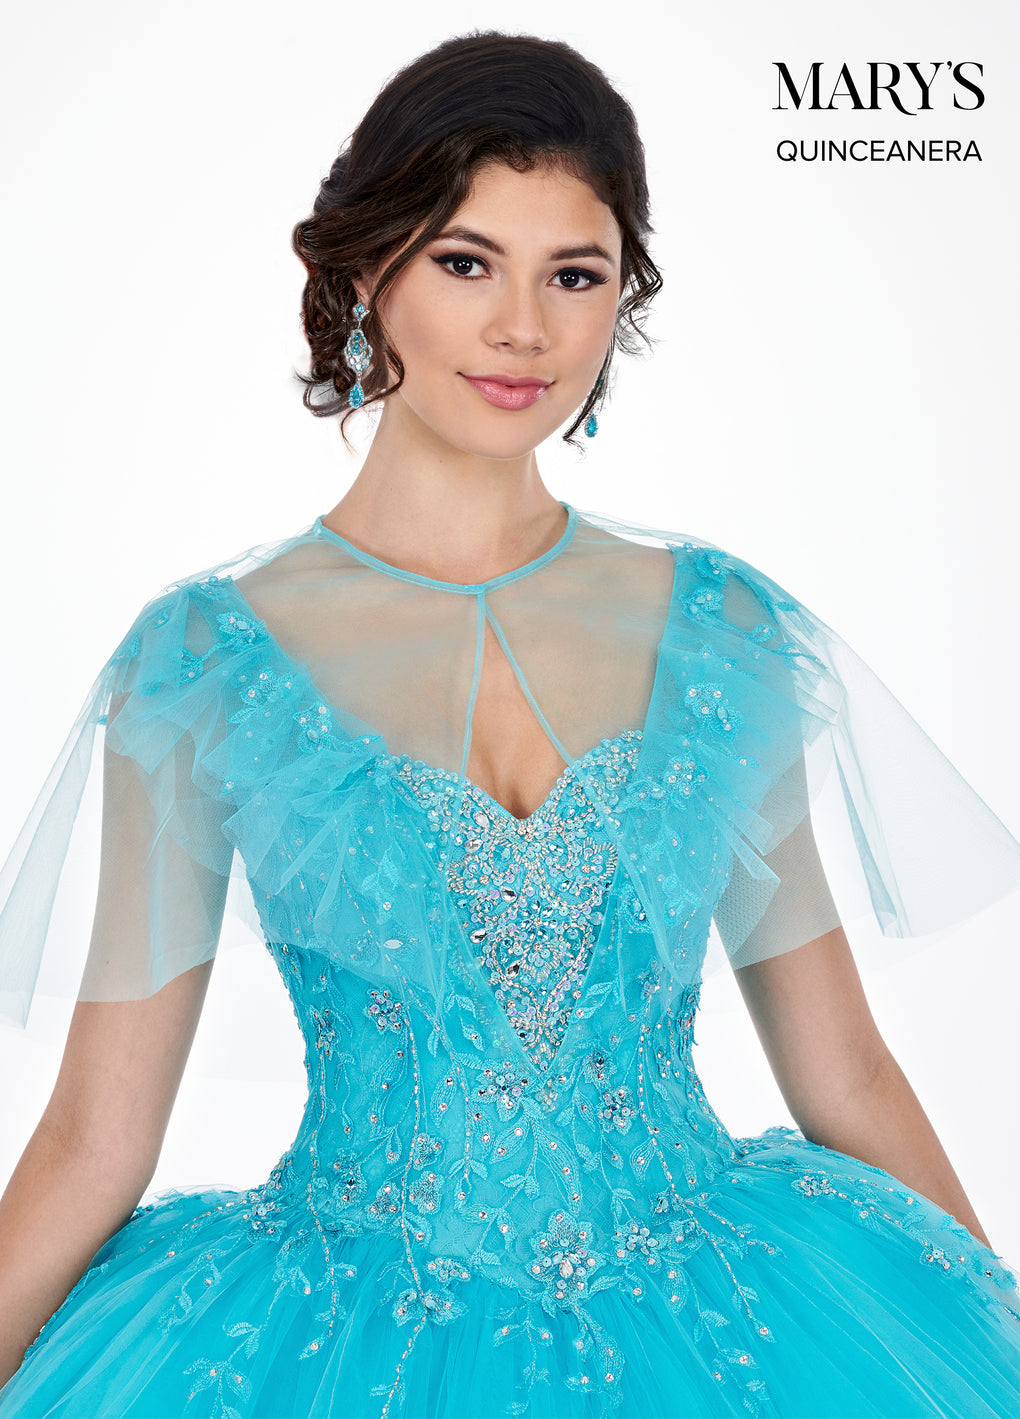 Marys Quinceanera Dresses in Soft Turquoise or Deep Blush Color